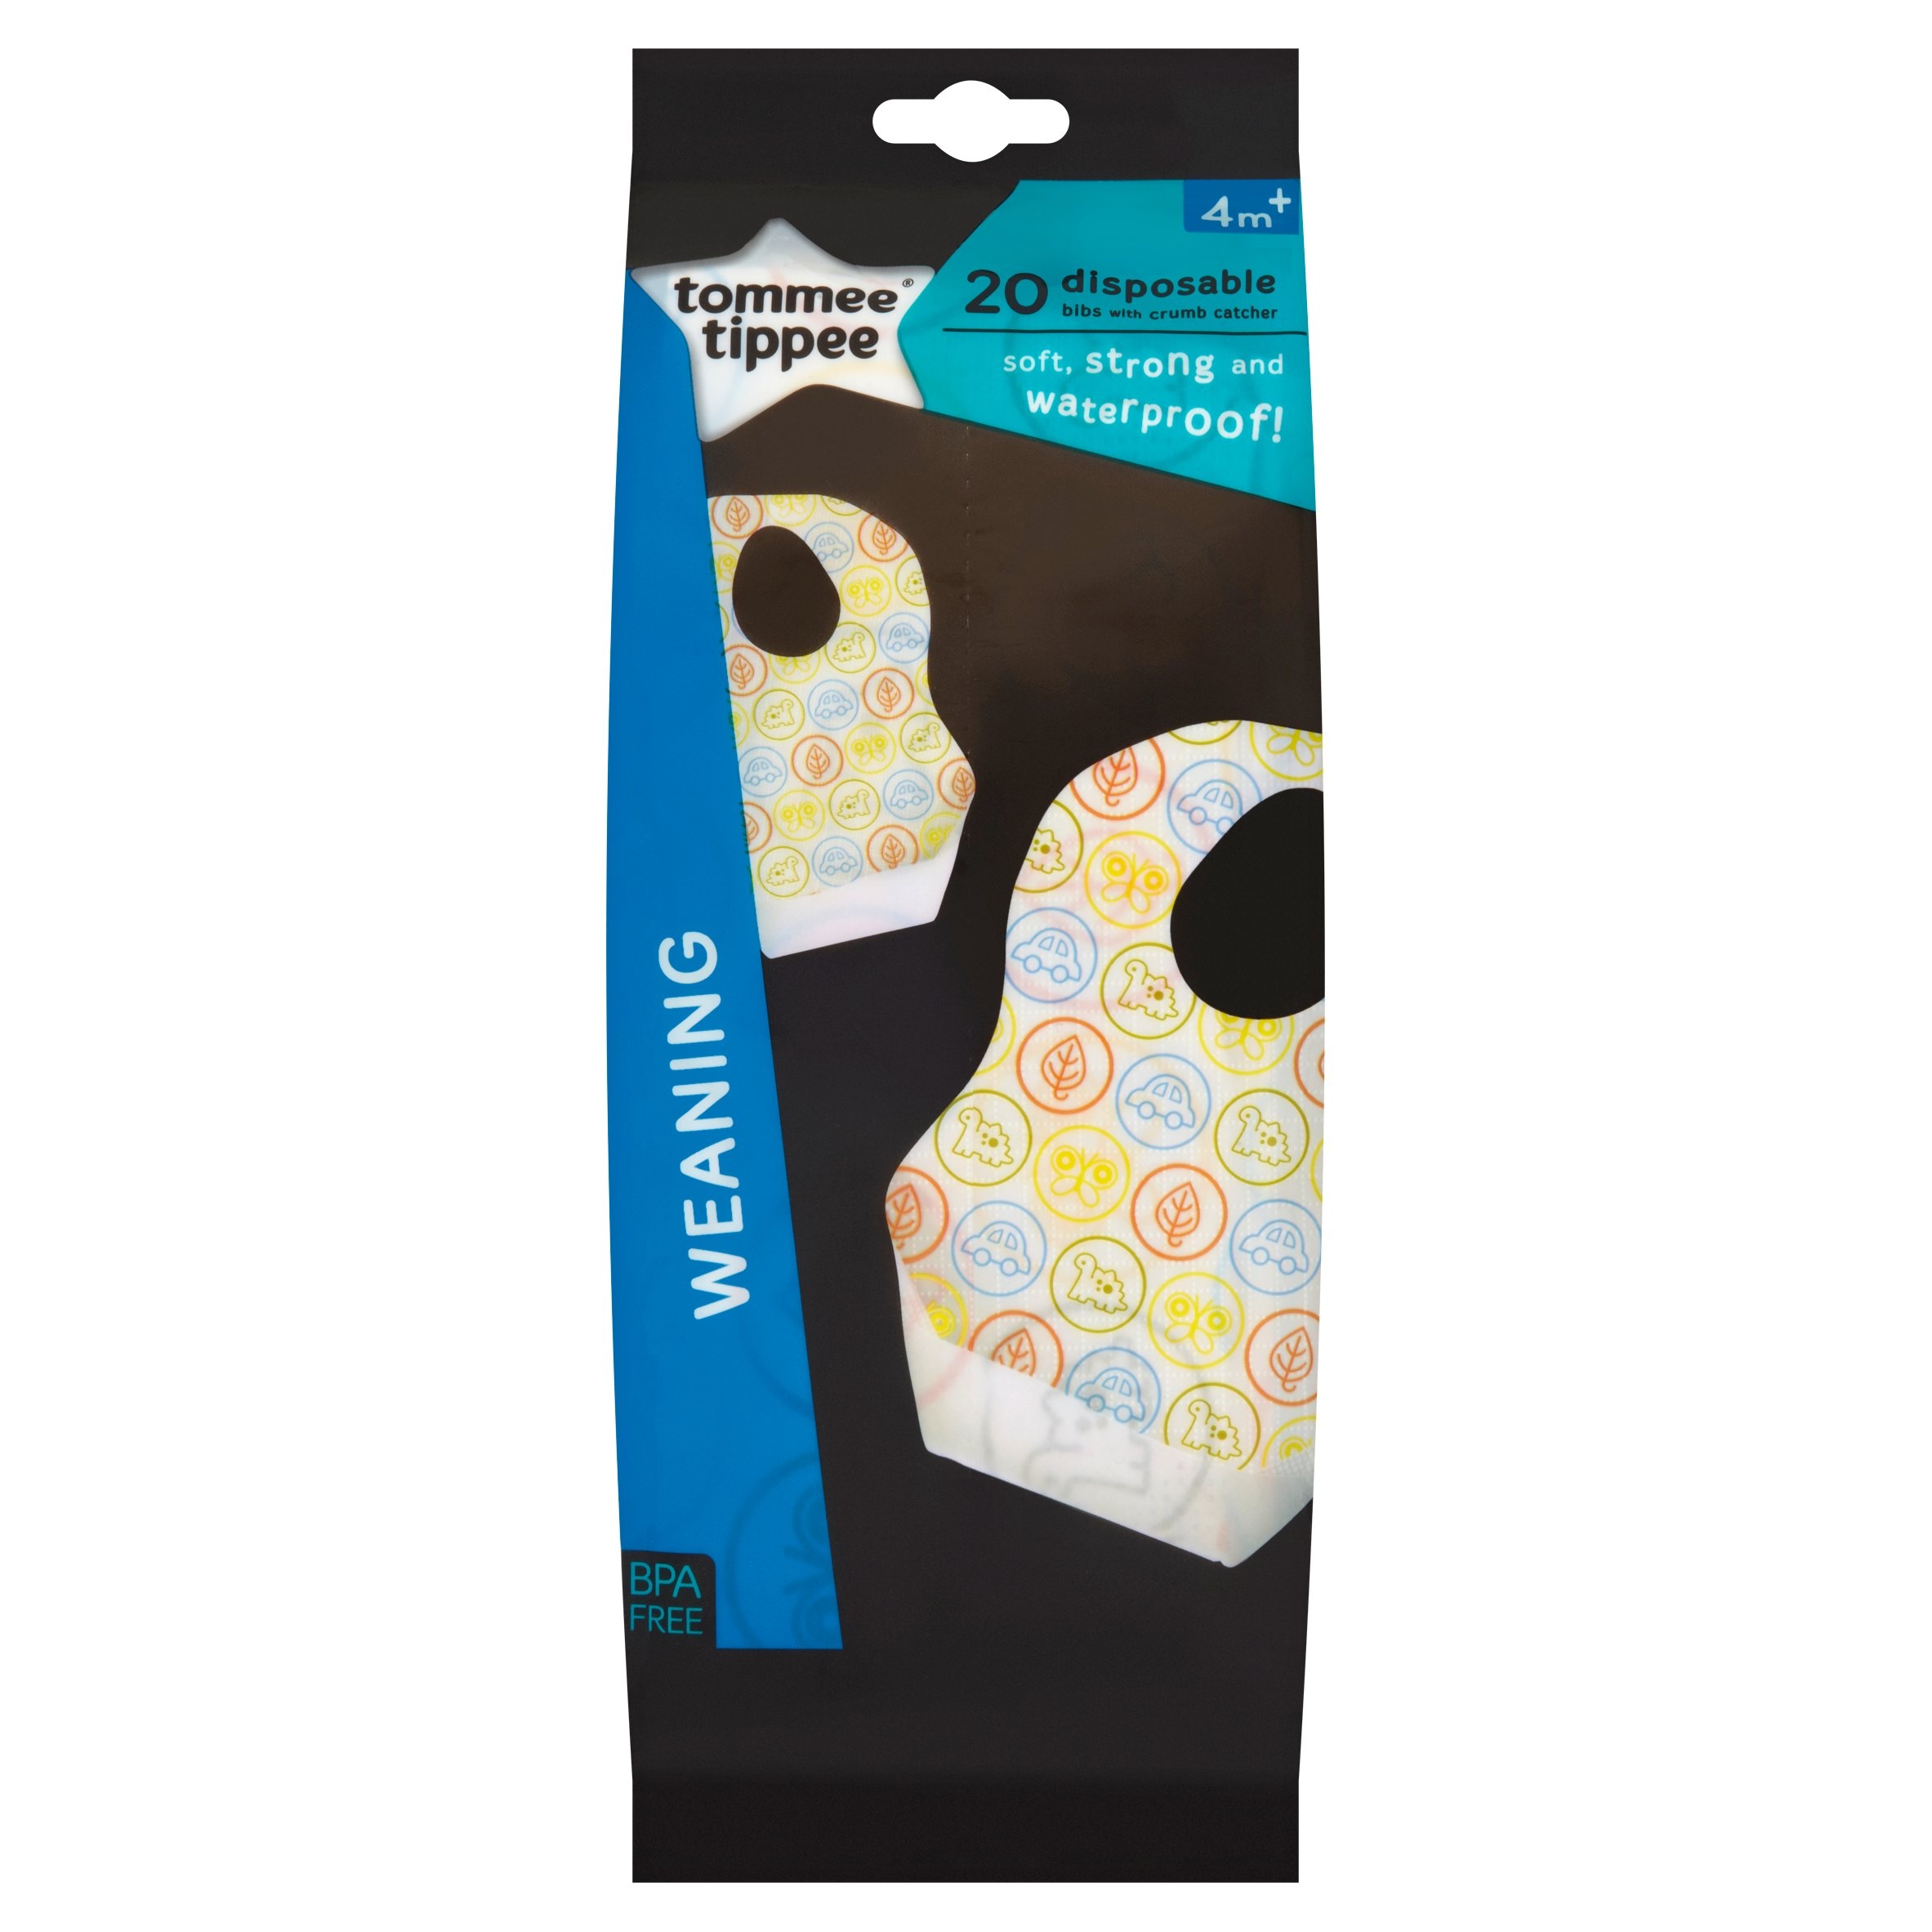 Tommee Tippee Disposable Baby Bibs For Weaning Two Packs Of 20 BPA FREE